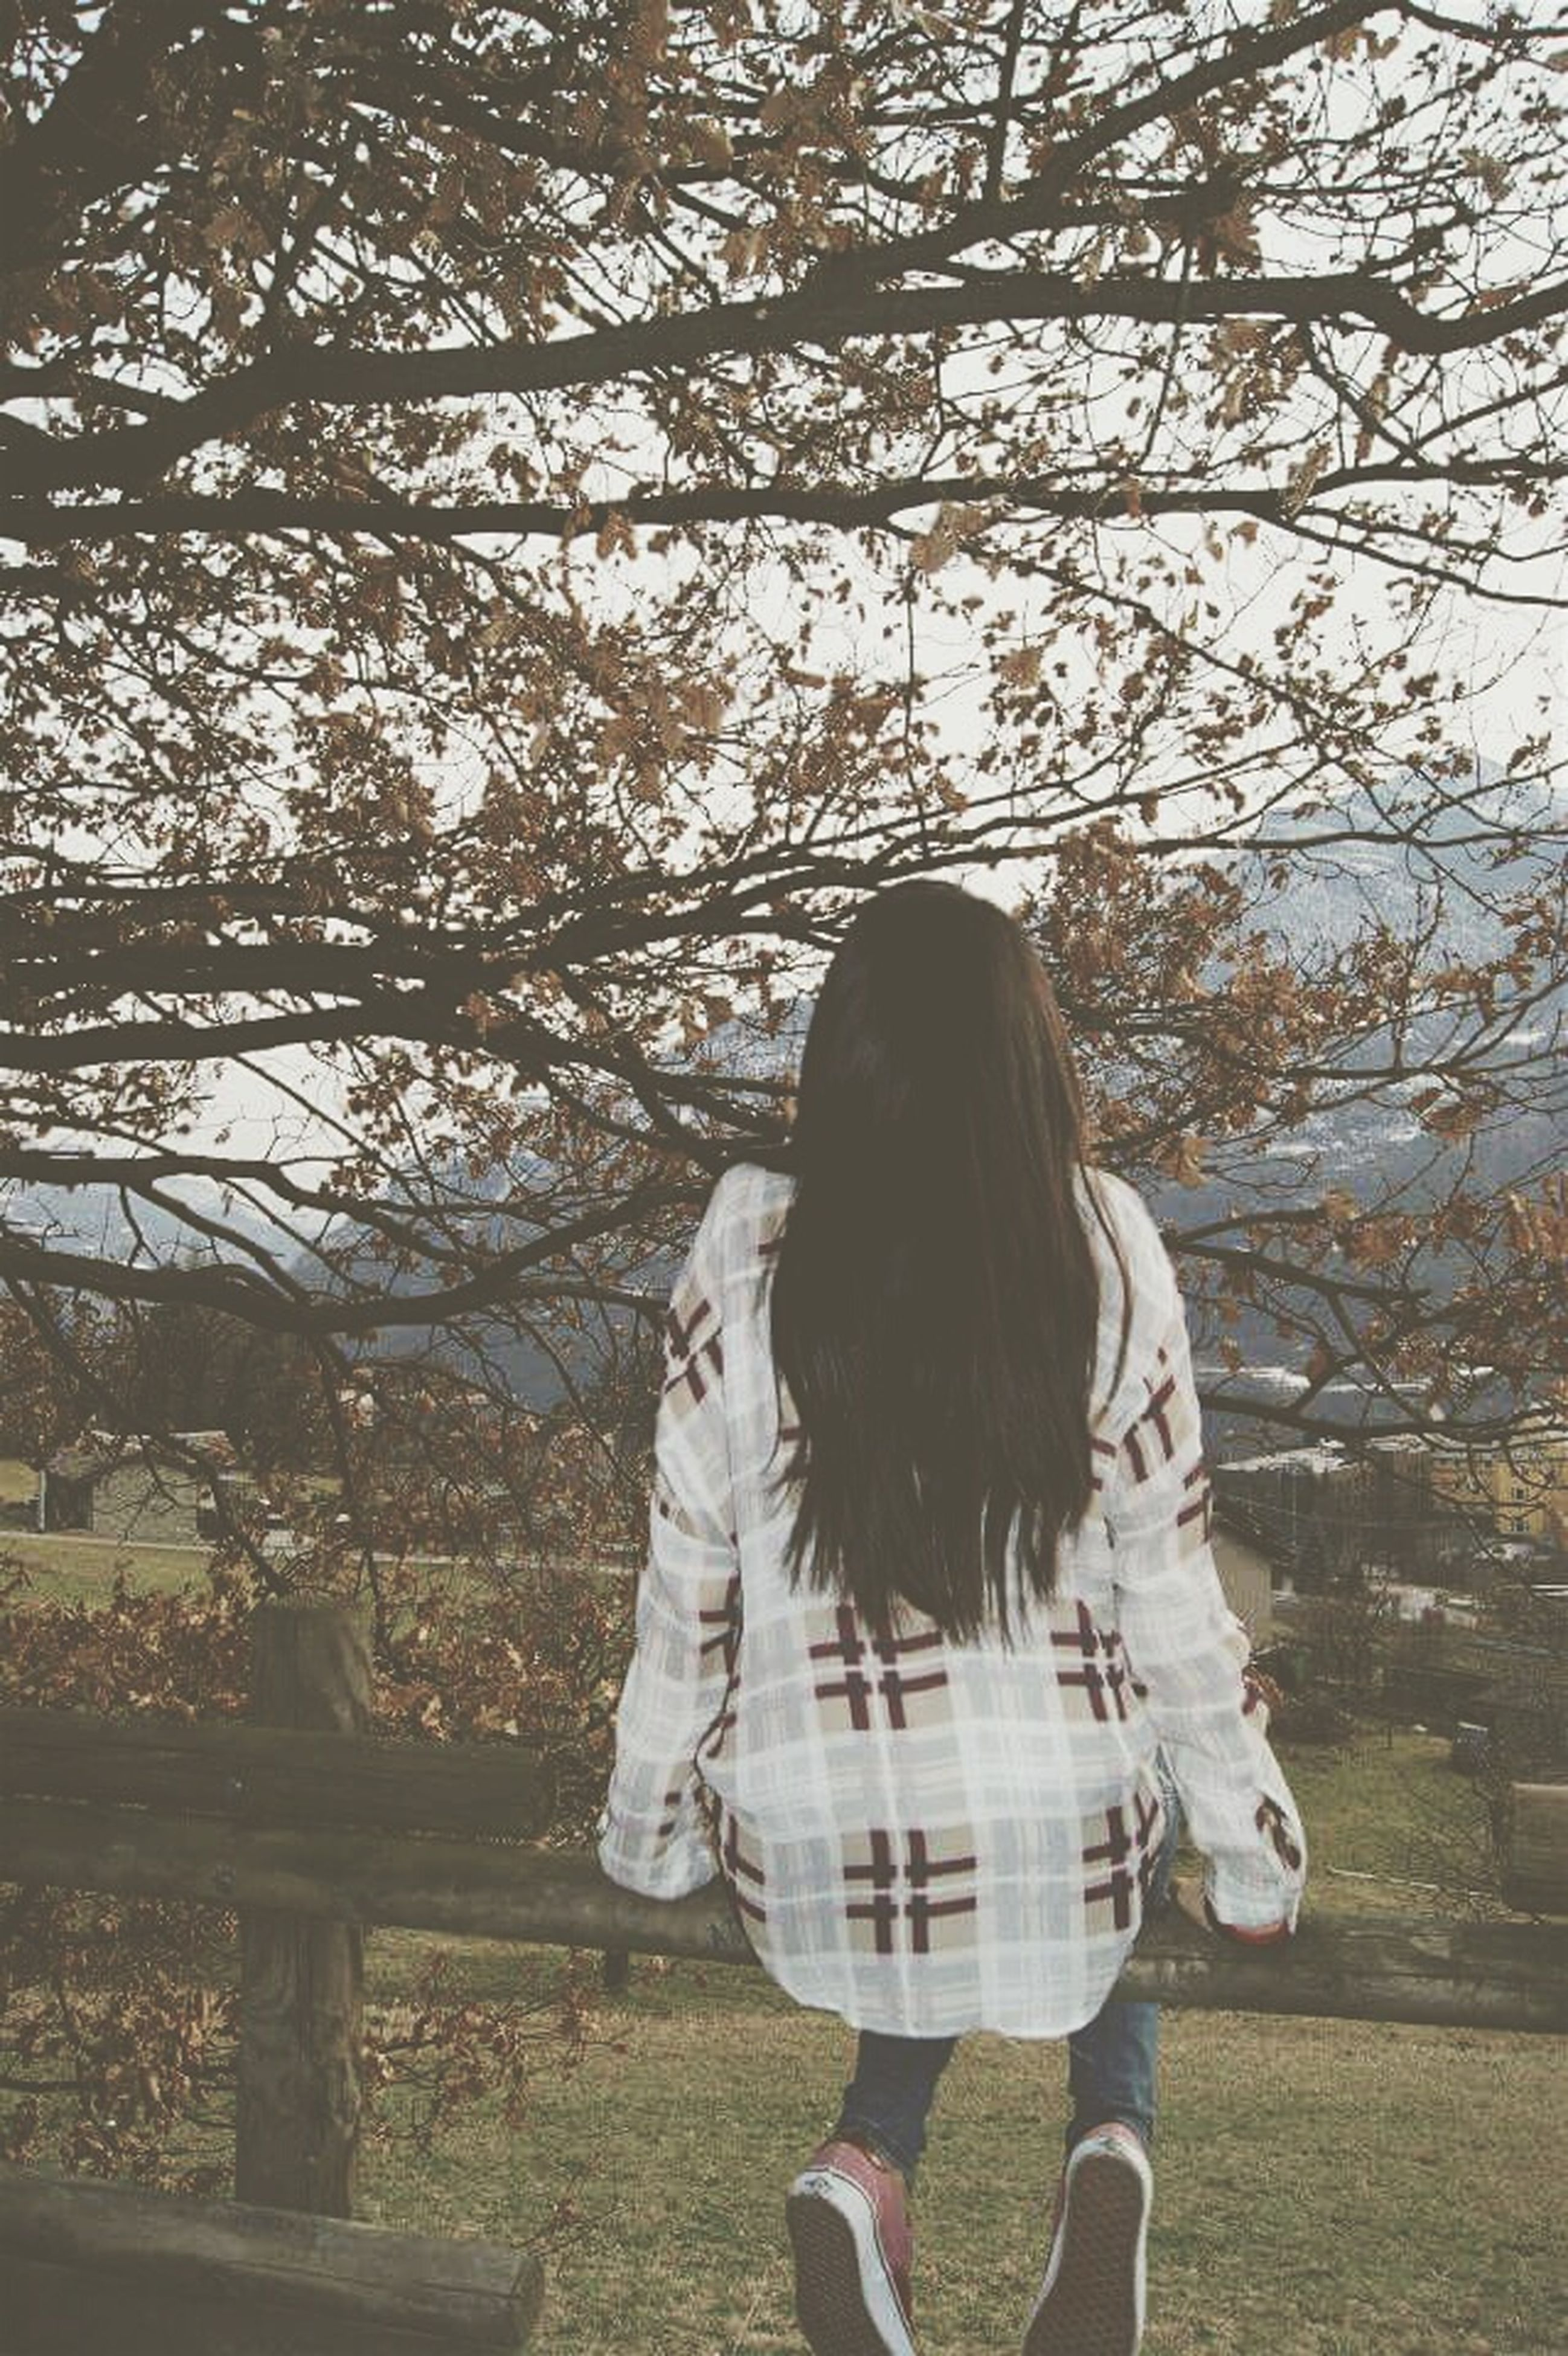 tree, rear view, lifestyles, leisure activity, casual clothing, full length, standing, long hair, person, three quarter length, girls, waist up, young women, nature, childhood, park - man made space, branch